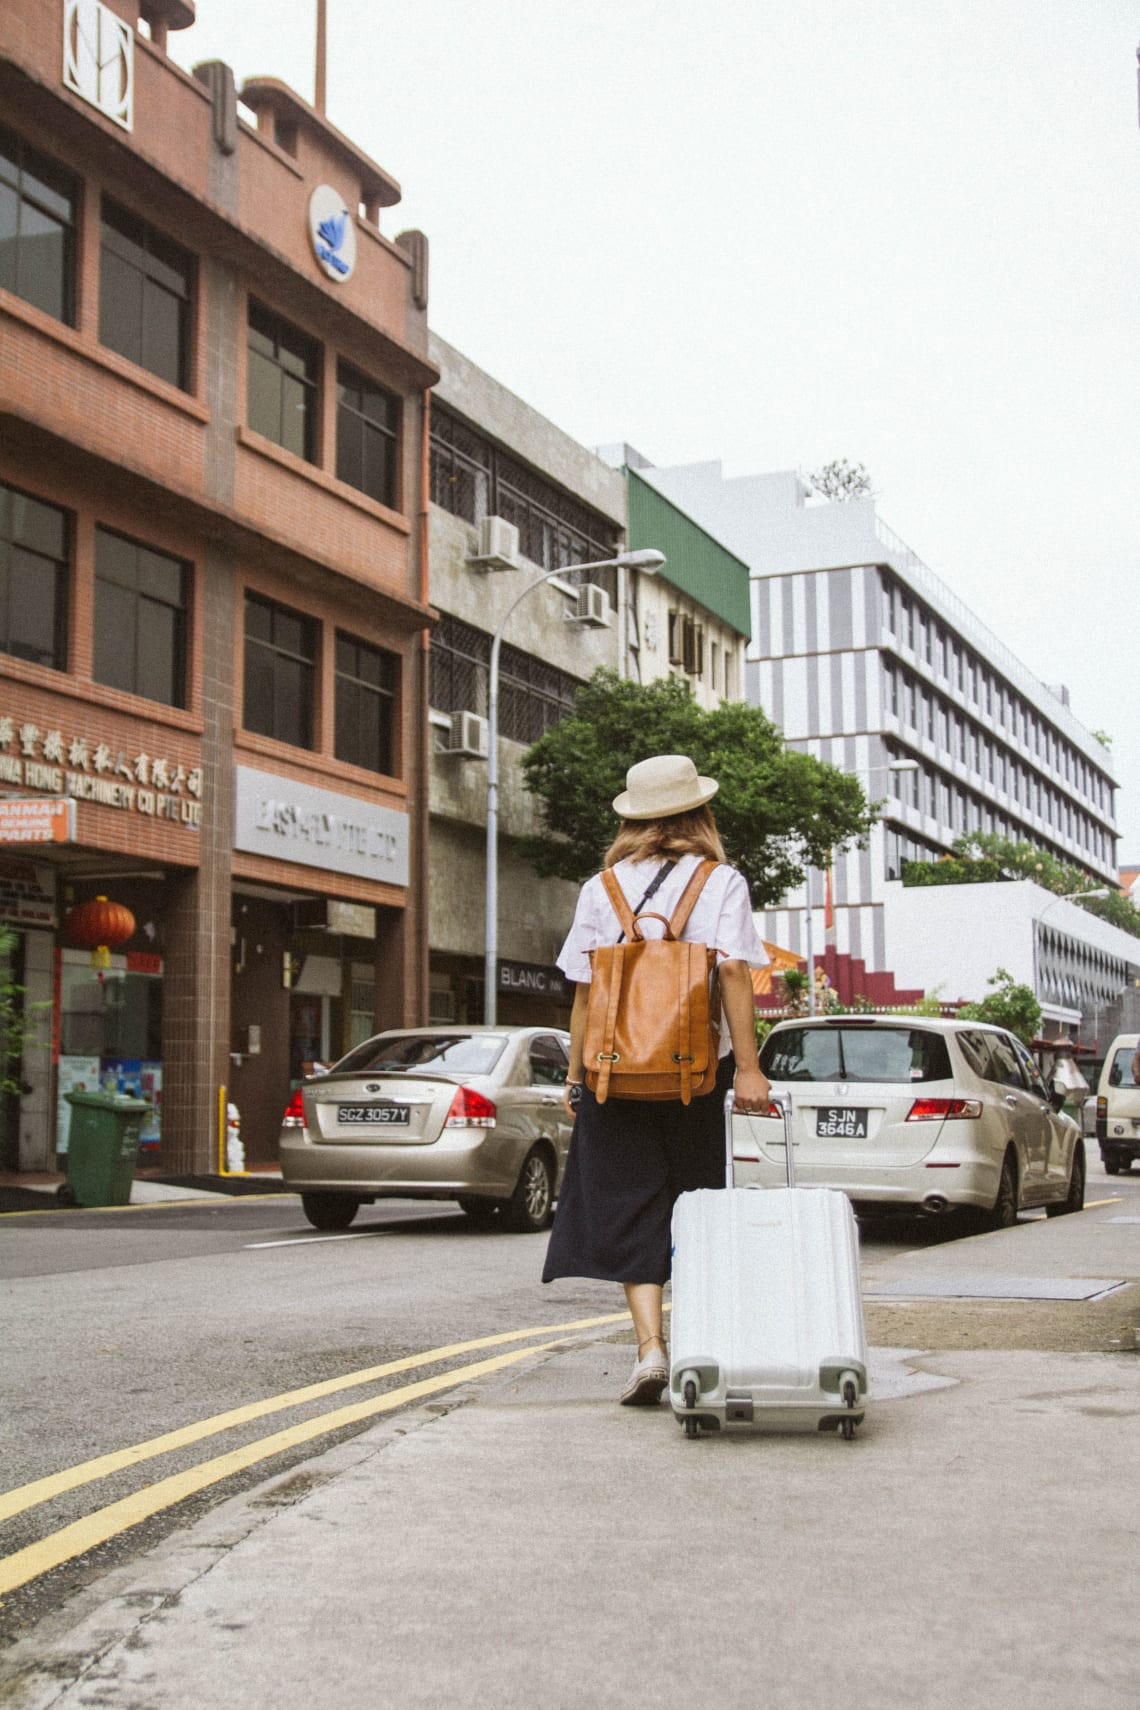 Woman strolling down the sidewalk with minimalist luggage